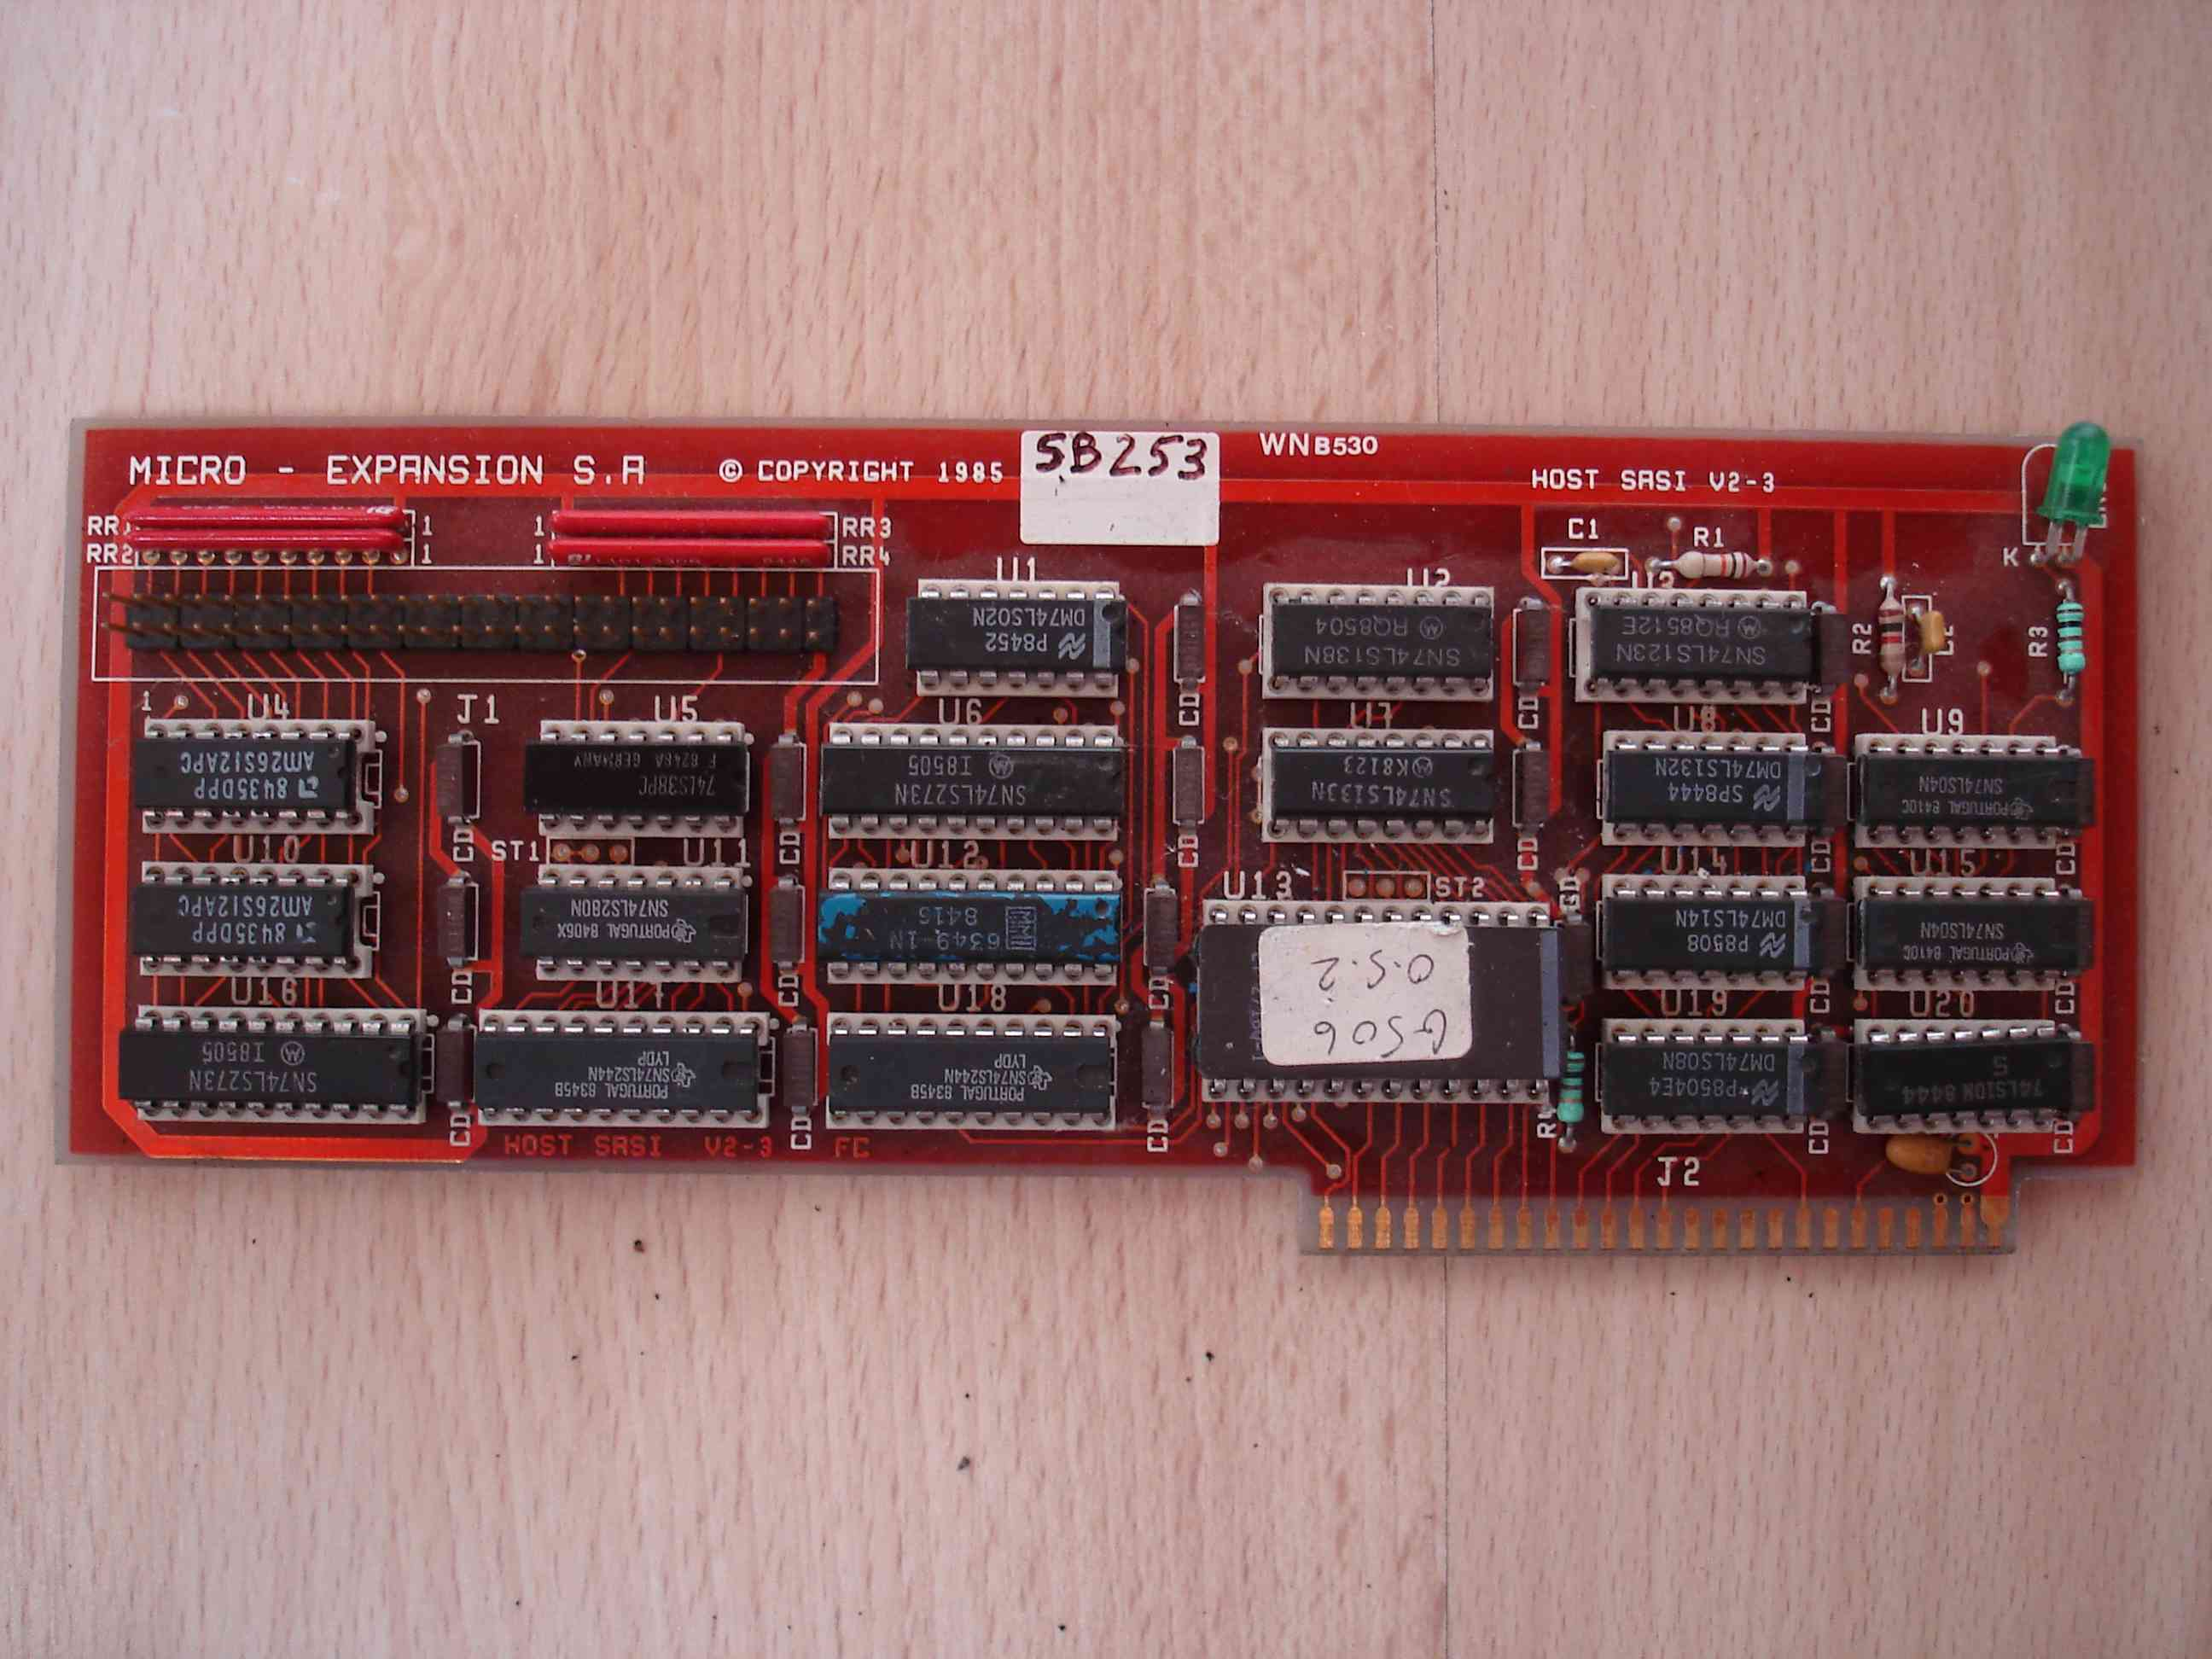 Microexpansion SCSI.JPG